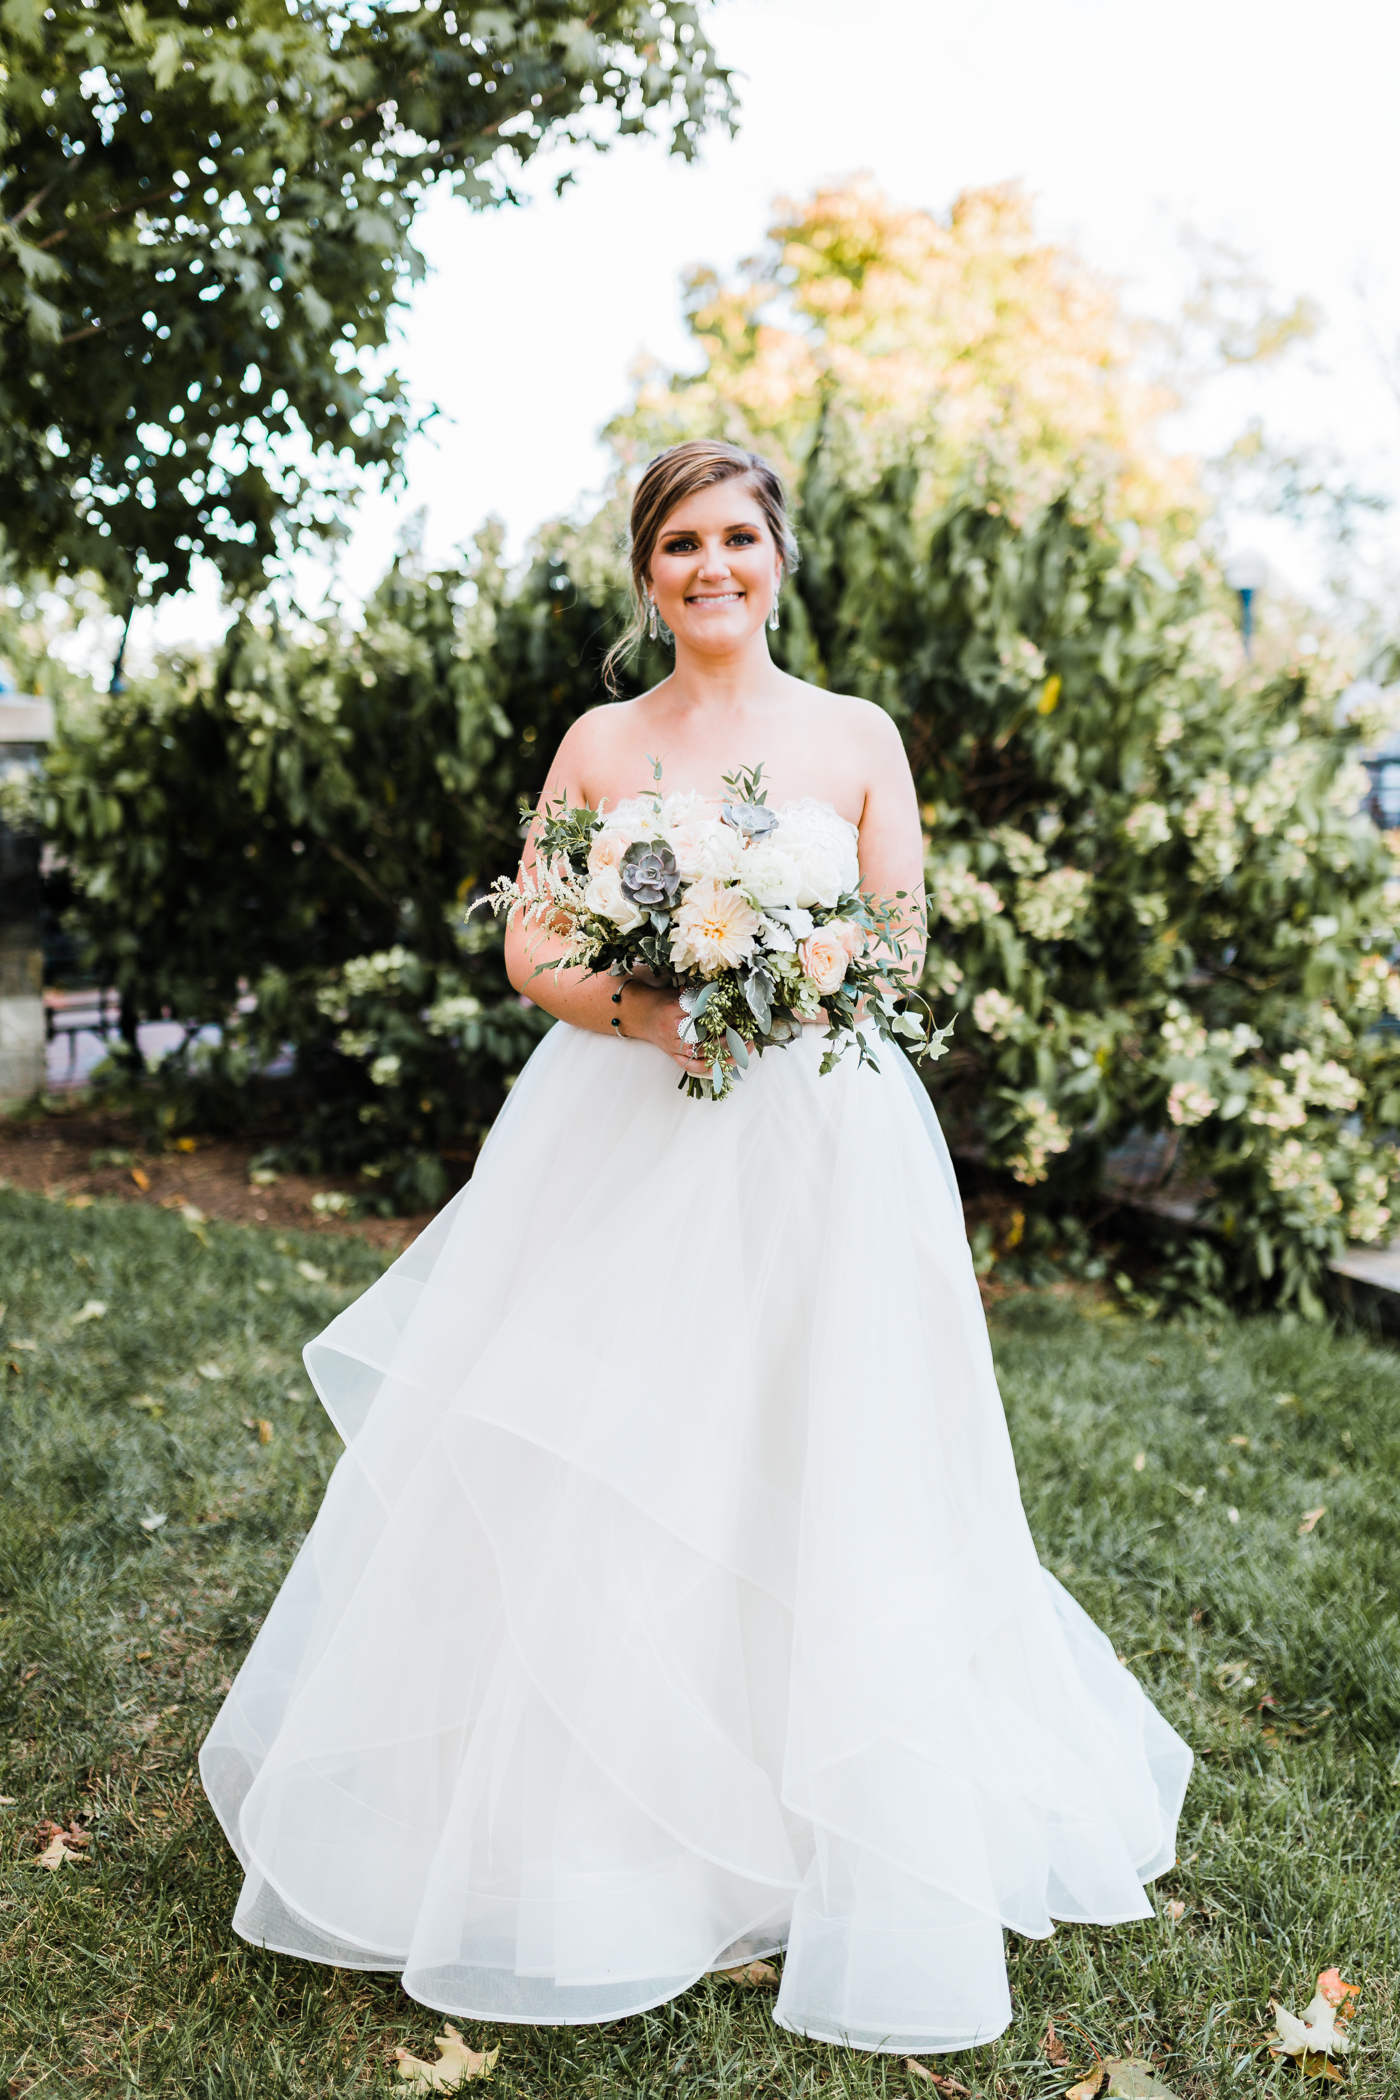 unique wedding dresses and gowns in Maryland area - fall wedding ideas in Maryland - succulent and dahlia bouquets